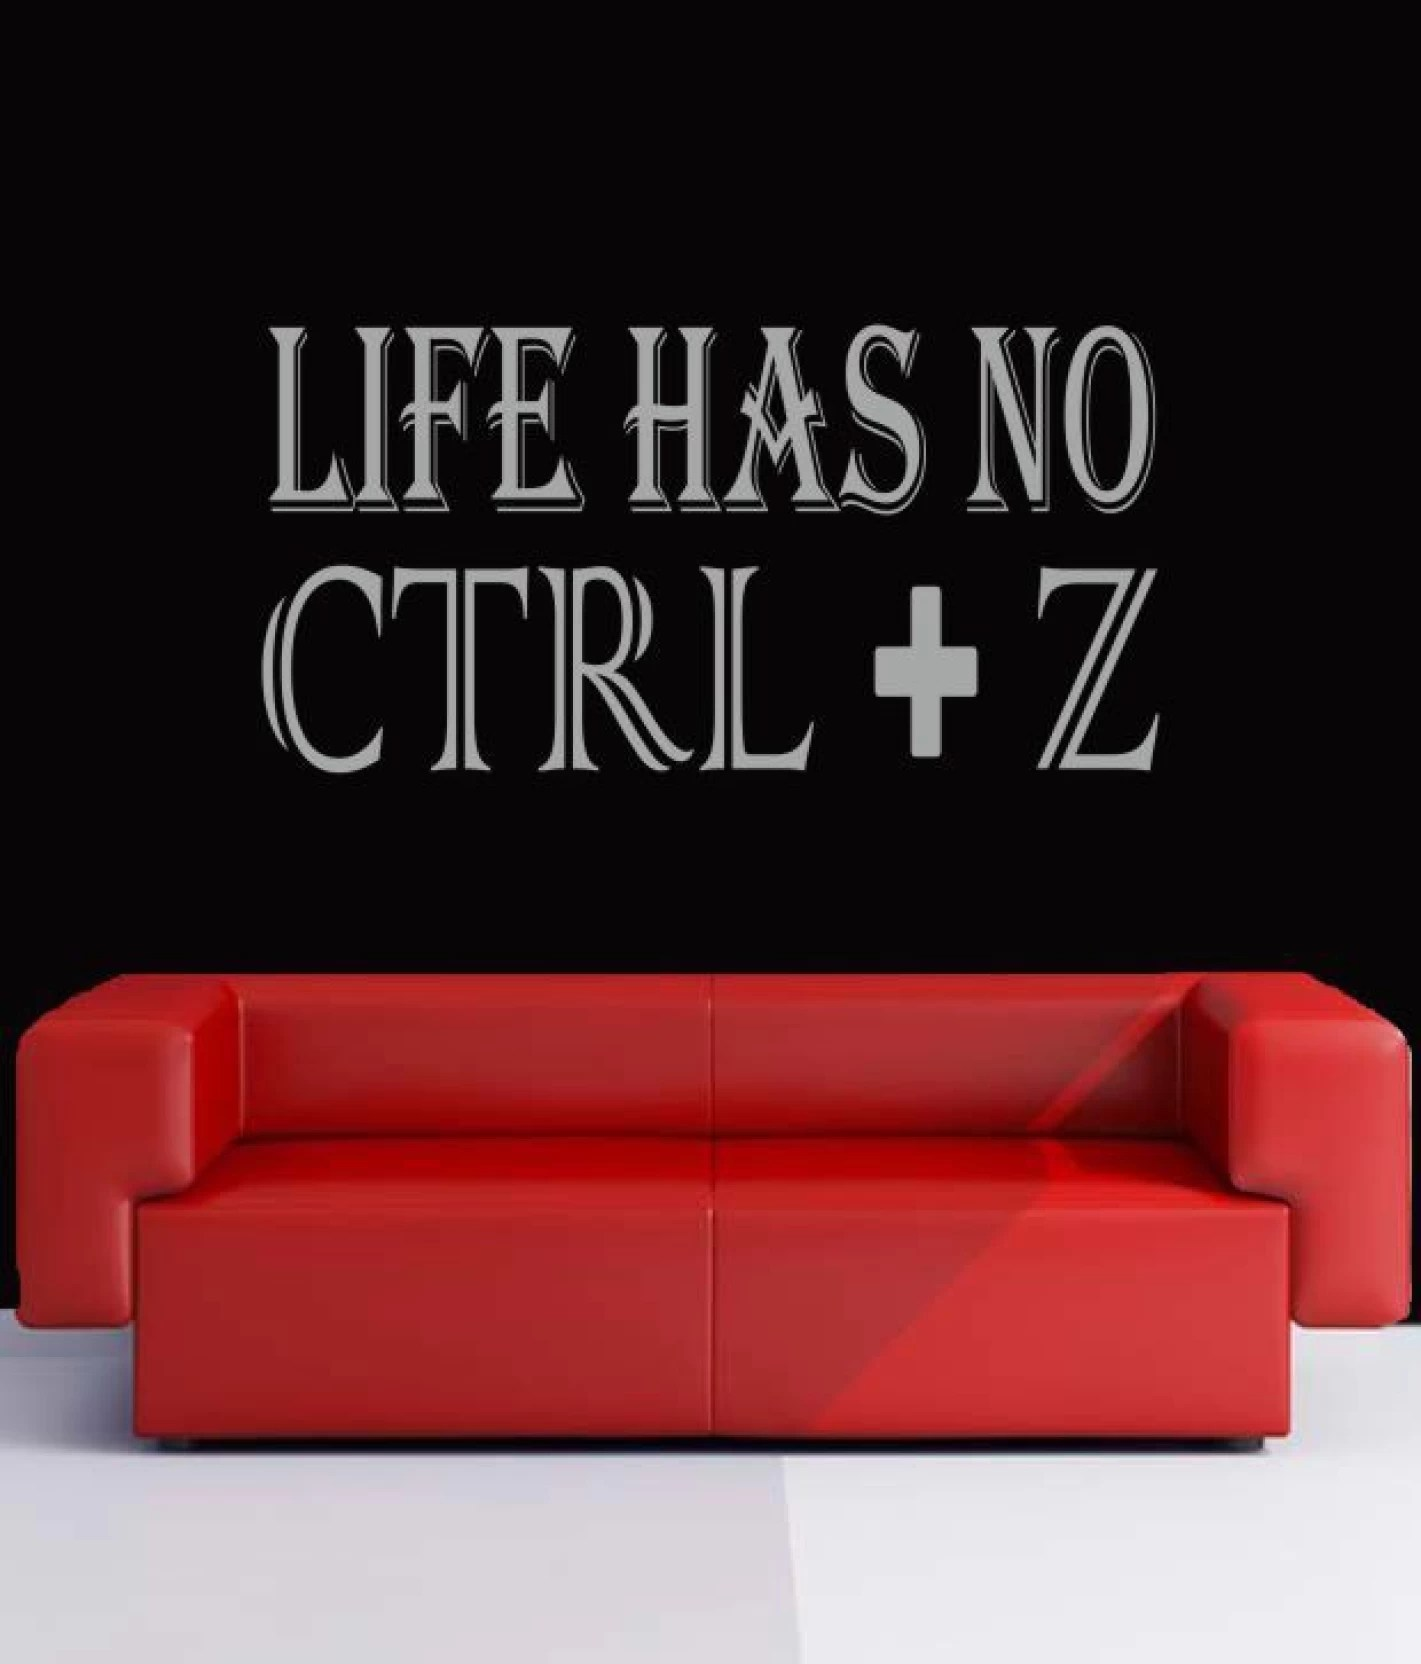 Sofa Quotes Ritzy Quotes Wallpaper Price In India Buy Ritzy Quotes Wallpaper